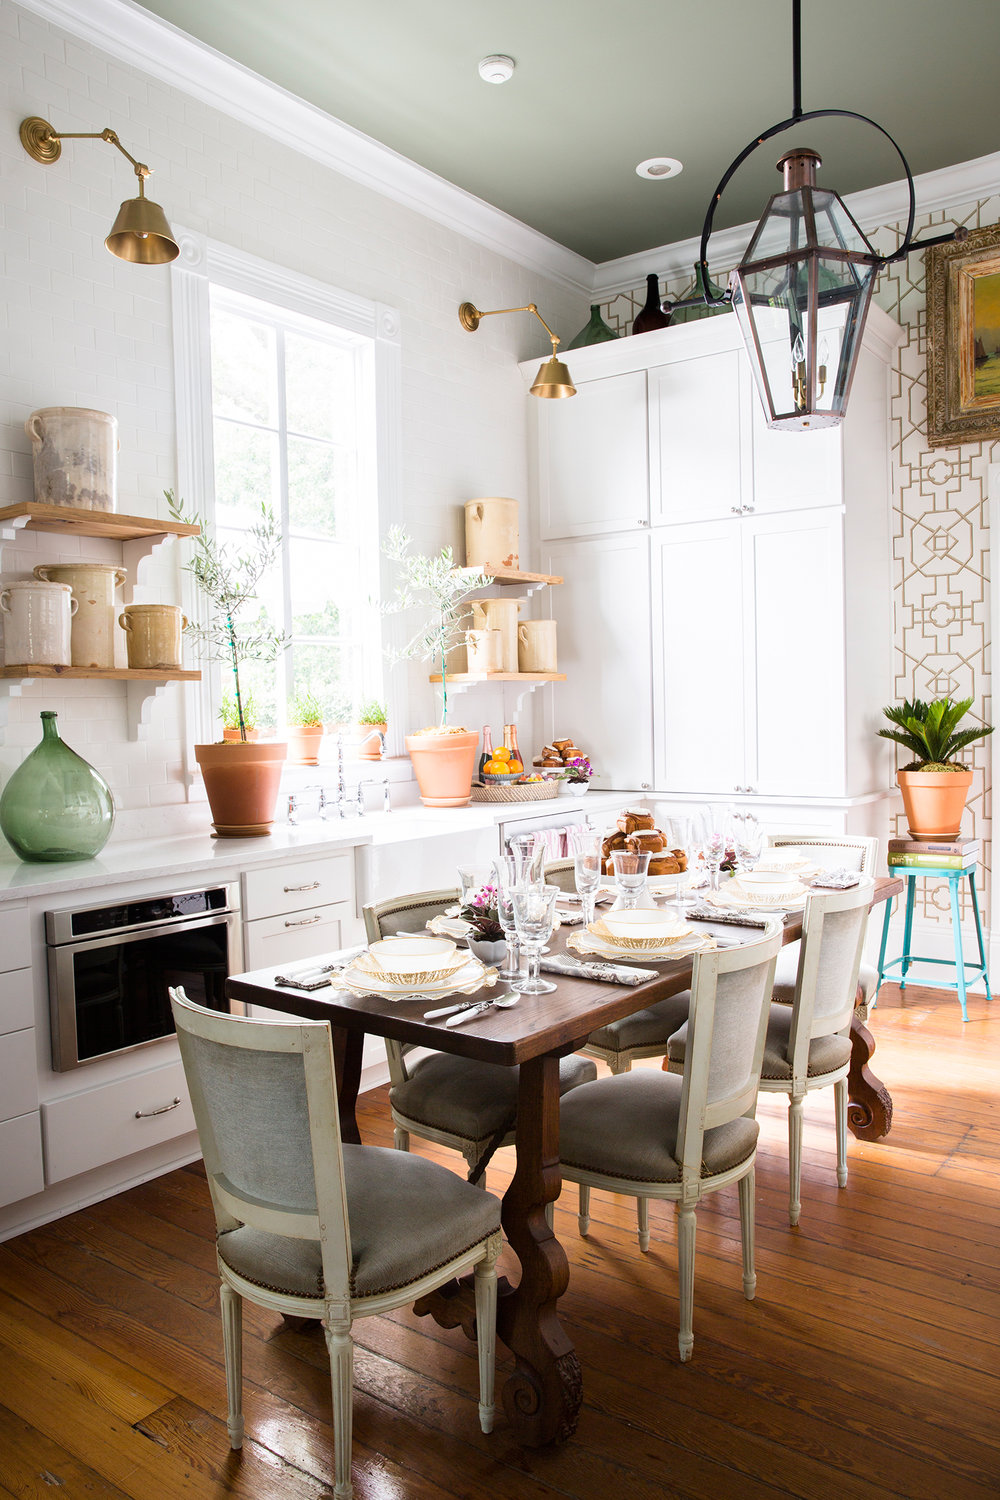 Great Kitchen Design Idea By James Farmer In Decor Inspiration Cool Chic Style Fashion